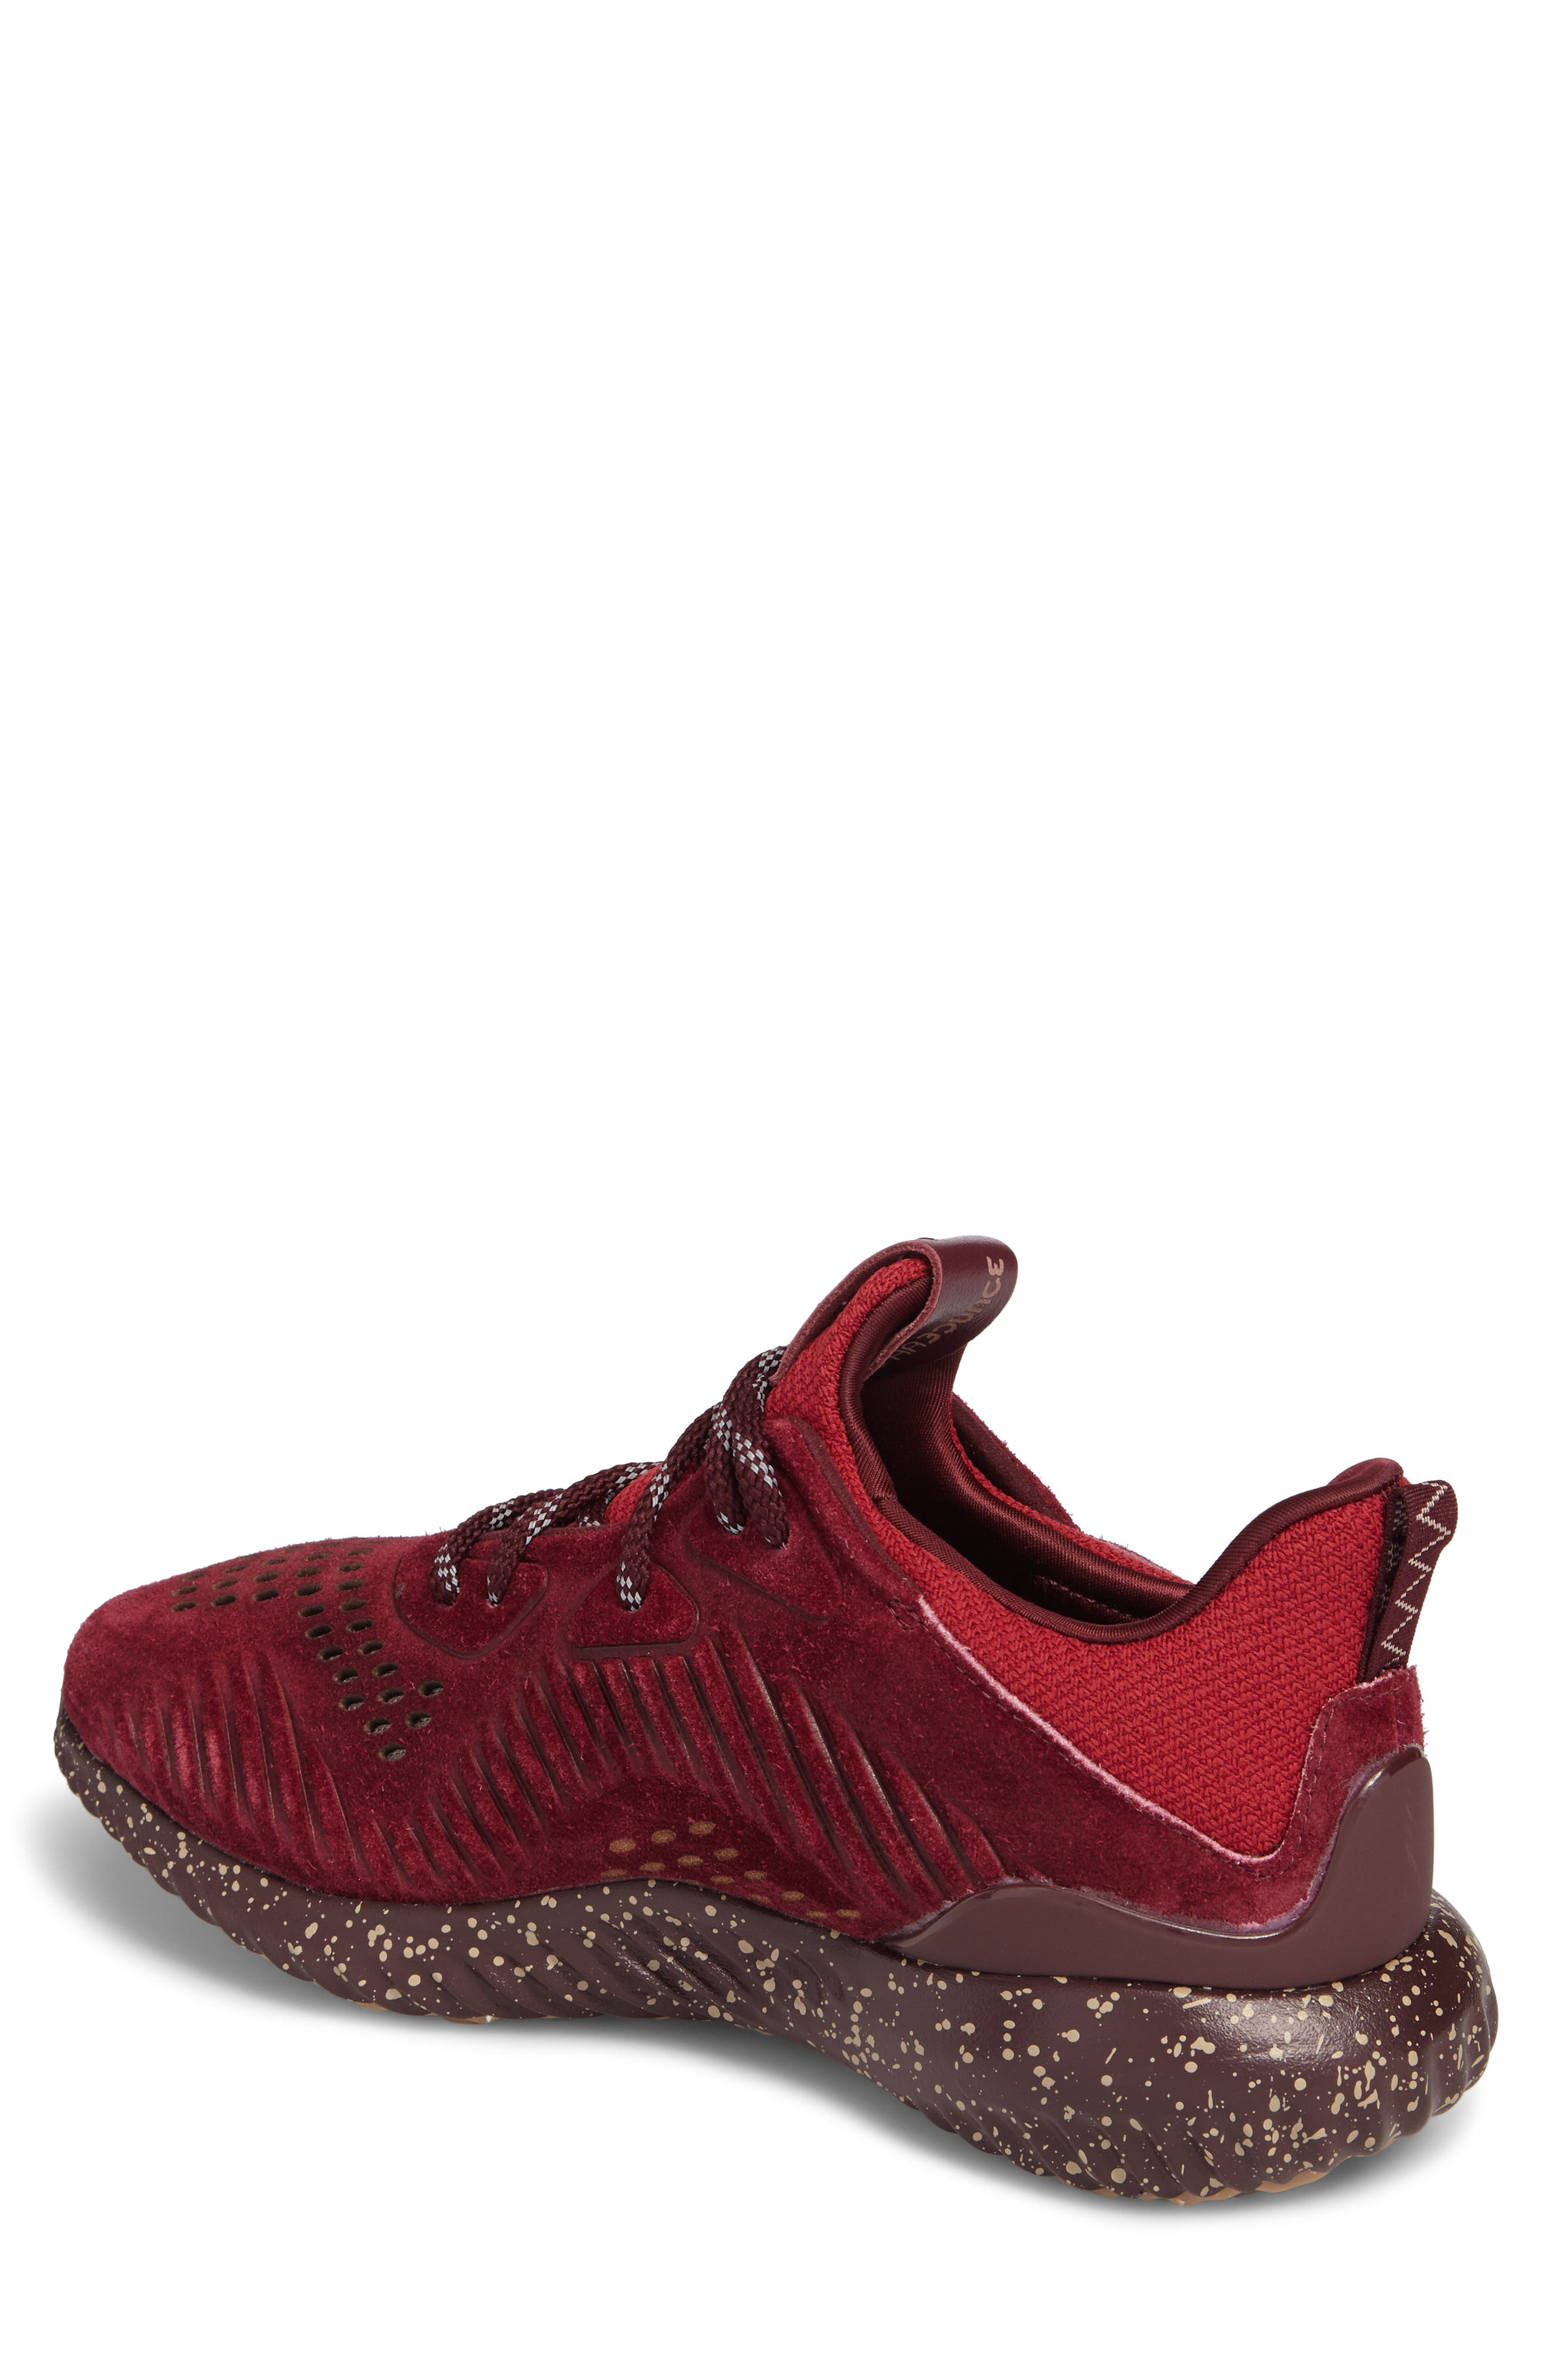 AlphaBounce LEA Running Shoe,                             Alternate thumbnail 4, color,